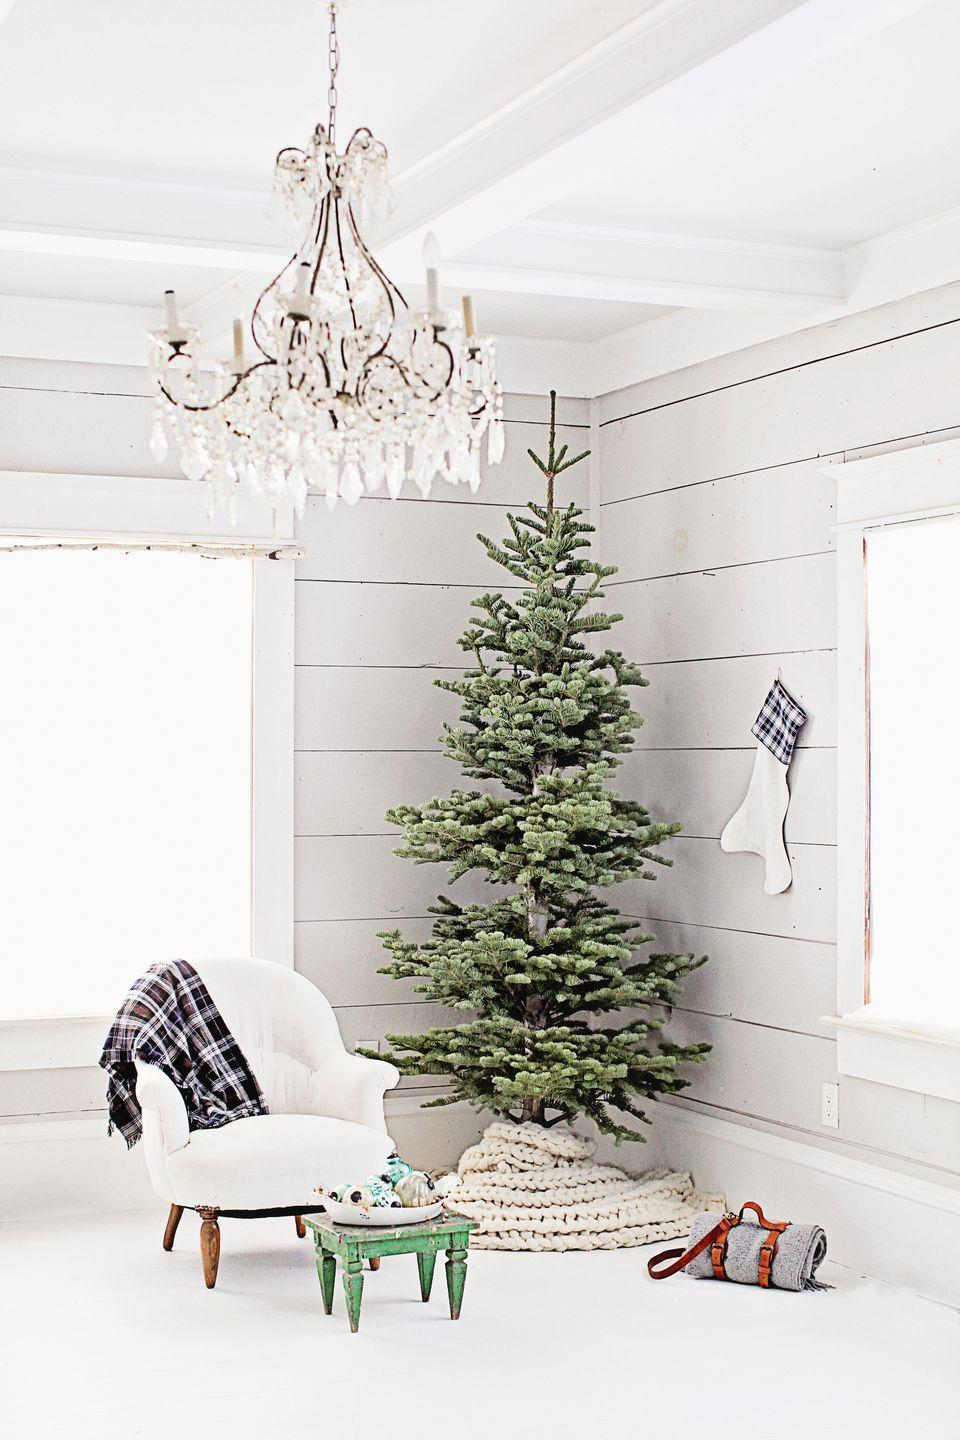 "<p>A skinny, unadorned tree in a creamy <a href=""https://www.elledecor.com/design-decorate/color/g304/white-walls/"" rel=""nofollow noopener"" target=""_blank"" data-ylk=""slk:white room"" class=""link rapid-noclick-resp"">white room</a> is perhaps a minimalist's dream. This design by <a href=""https://www.instagram.com/p/-ZS3-TvFpr/"" rel=""nofollow noopener"" target=""_blank"" data-ylk=""slk:Dreamy Whites"" class=""link rapid-noclick-resp"">Dreamy Whites</a> improvises a tree skirt from a blanket and adds a white-and-plaid stocking nearby for good measure. </p>"